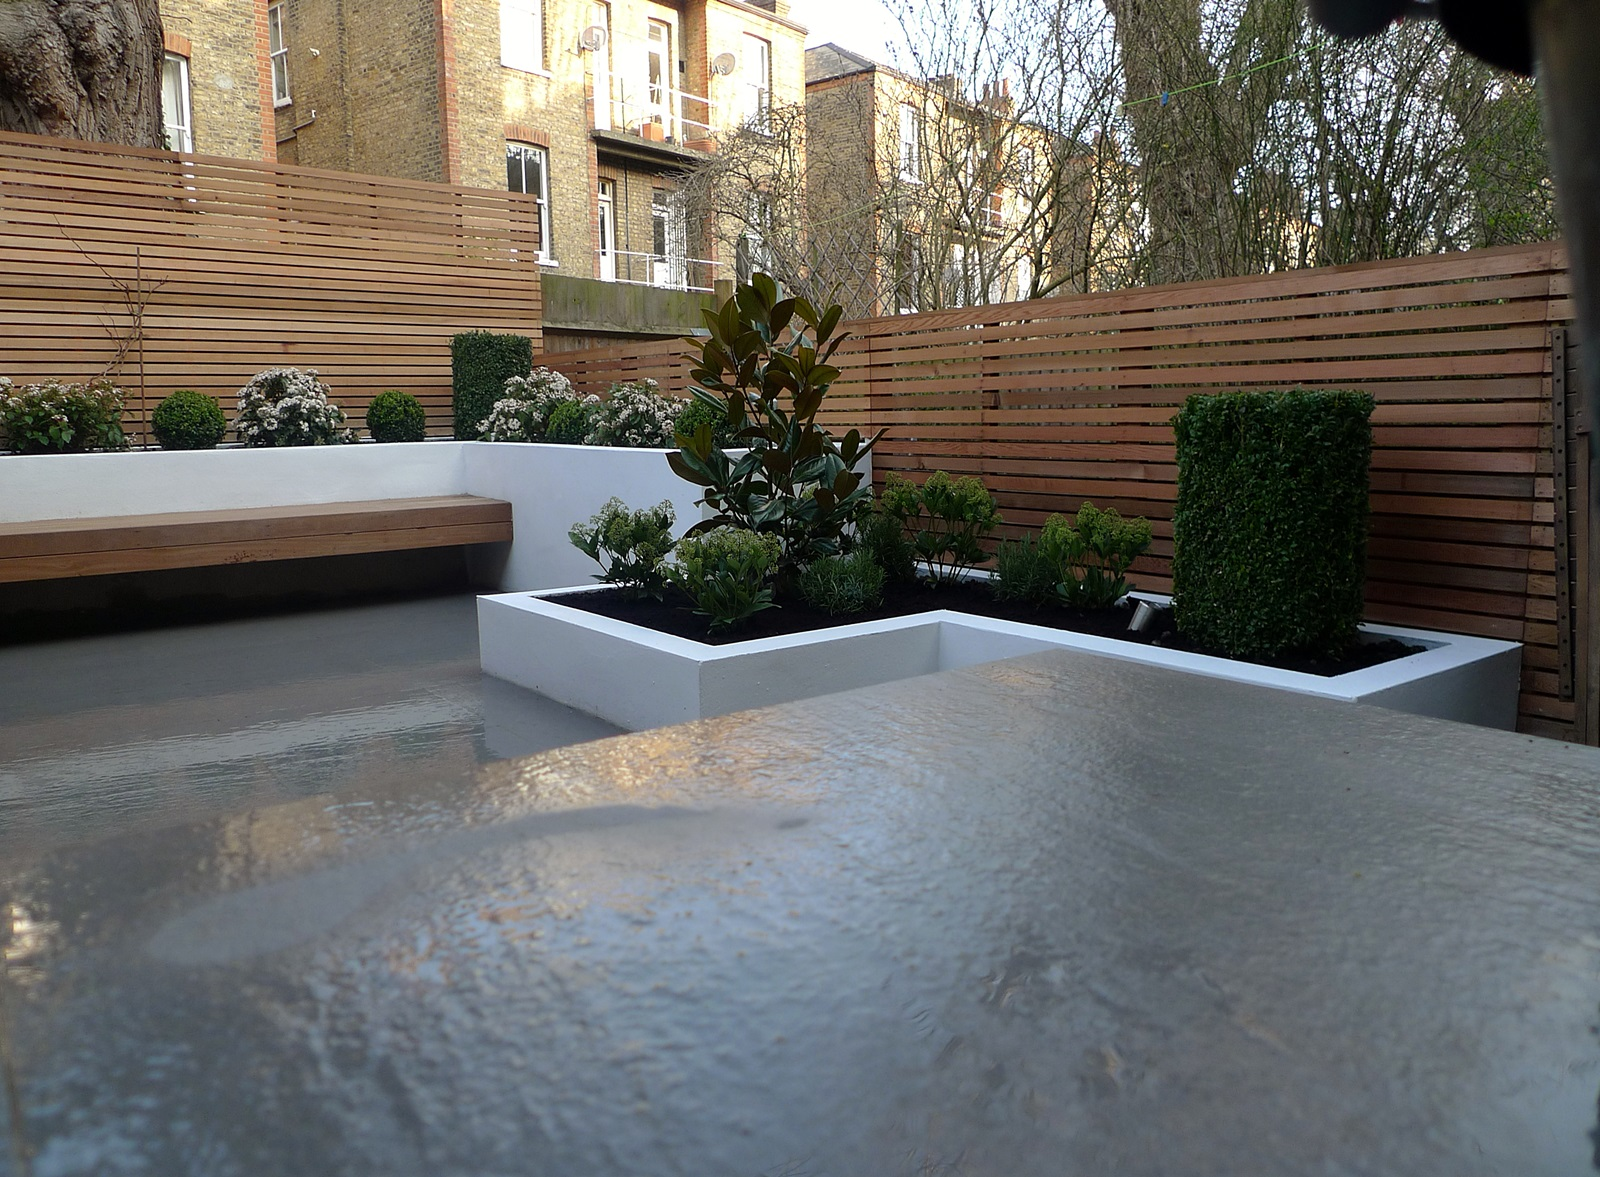 Garden design designer clapham balham battersea small low maintenance modern garden (11)